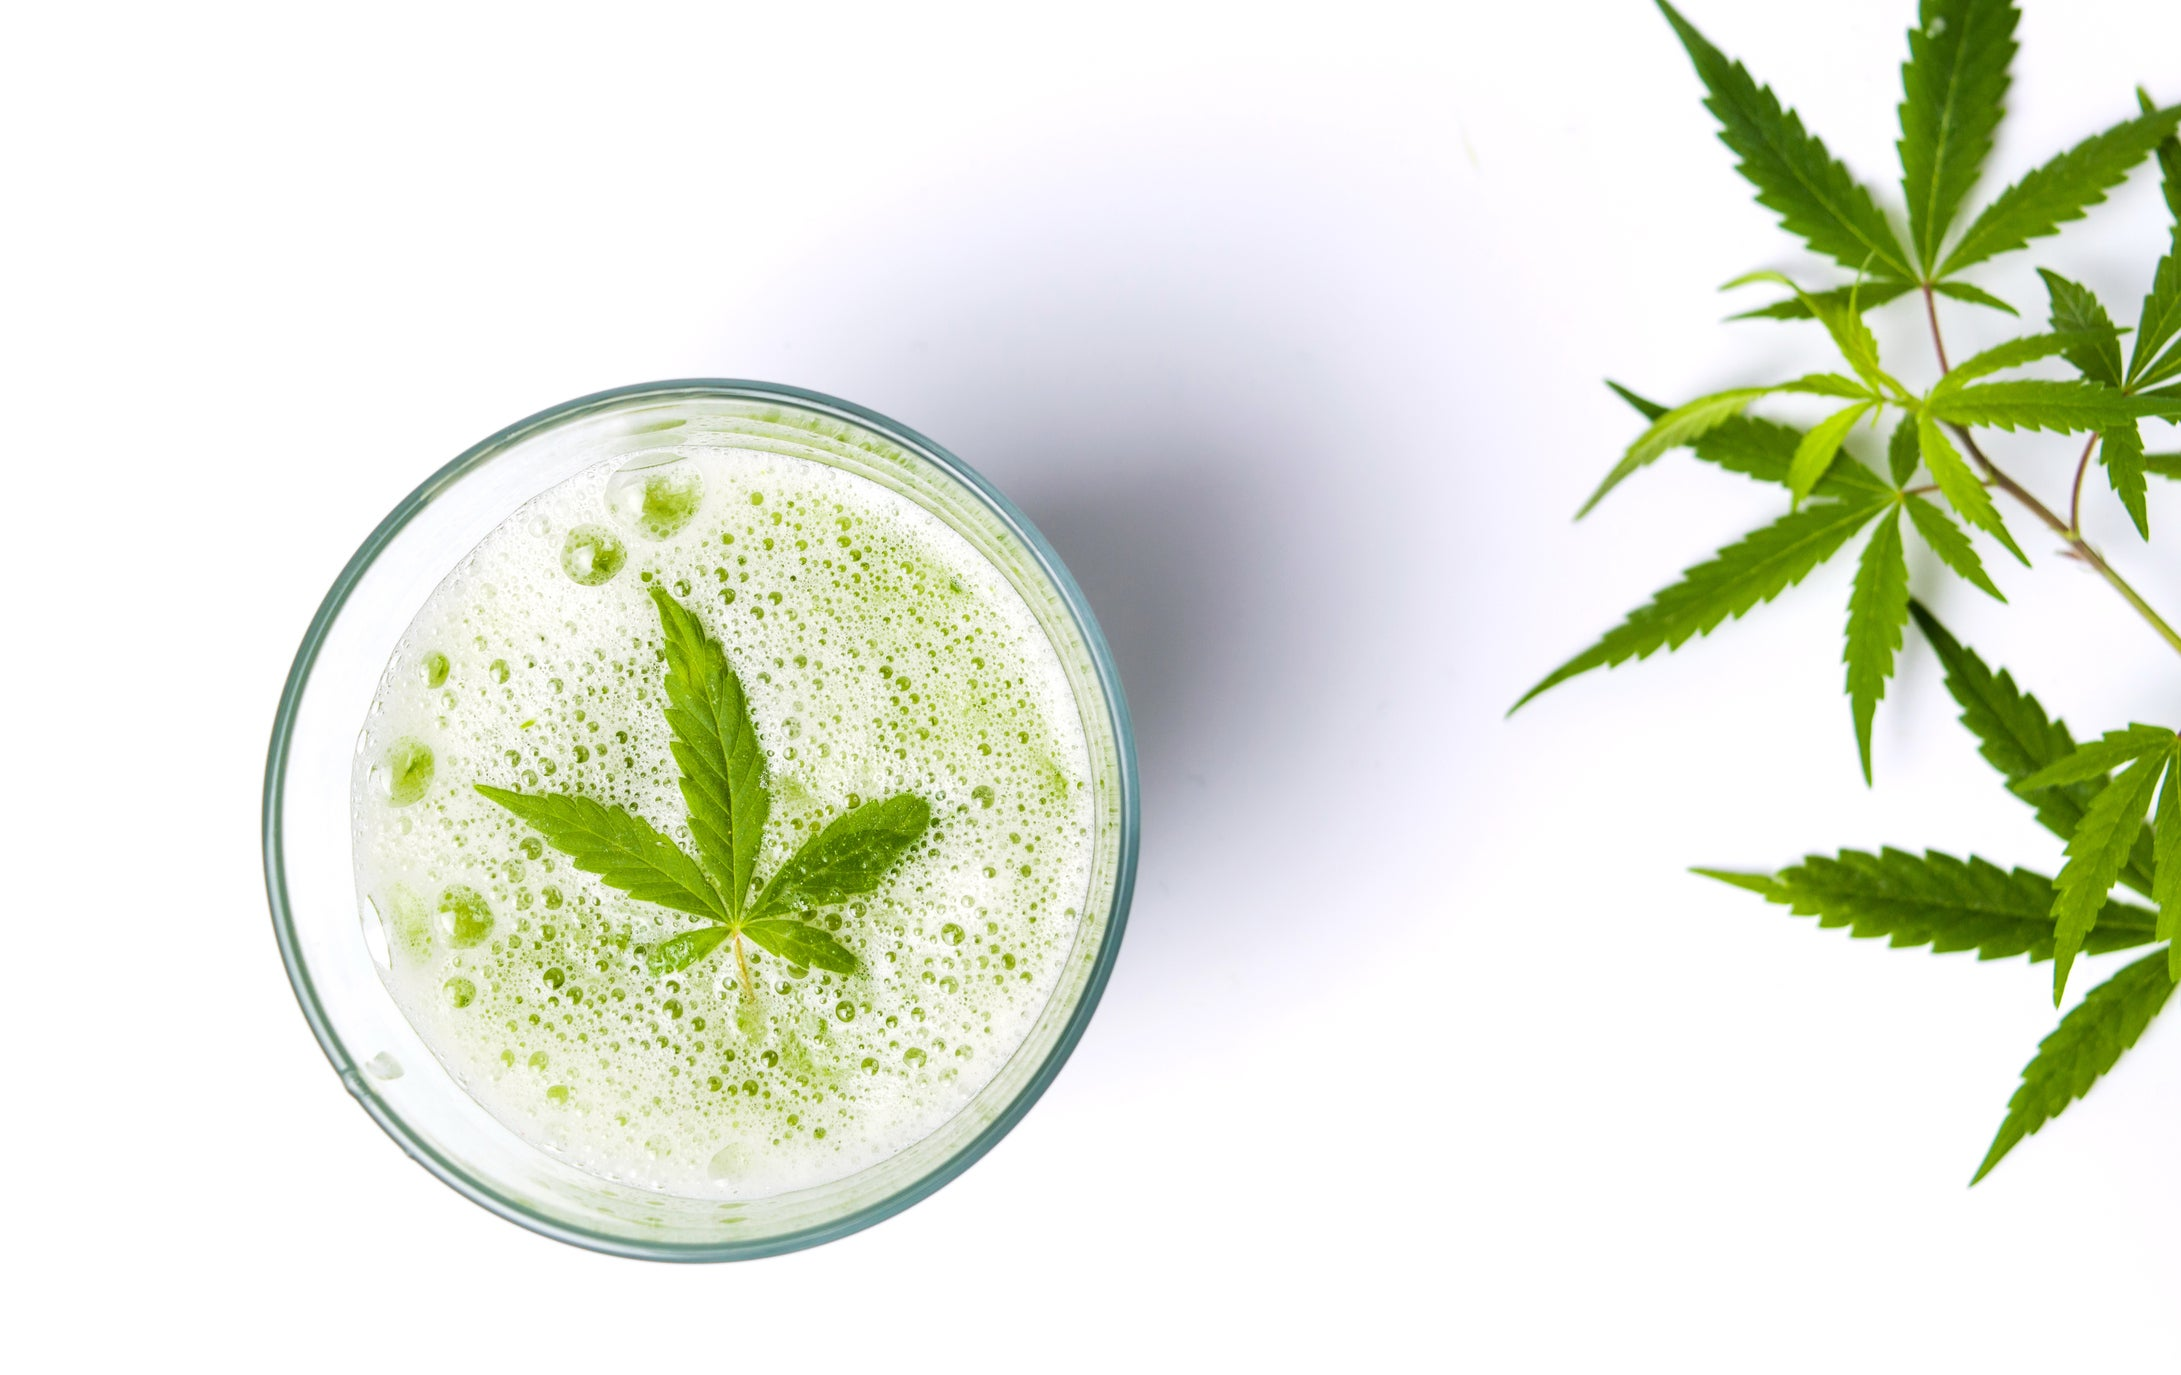 A cannabis leaf floating atop carbonation in a glass, with cannabis leaves set to the right of the glass.